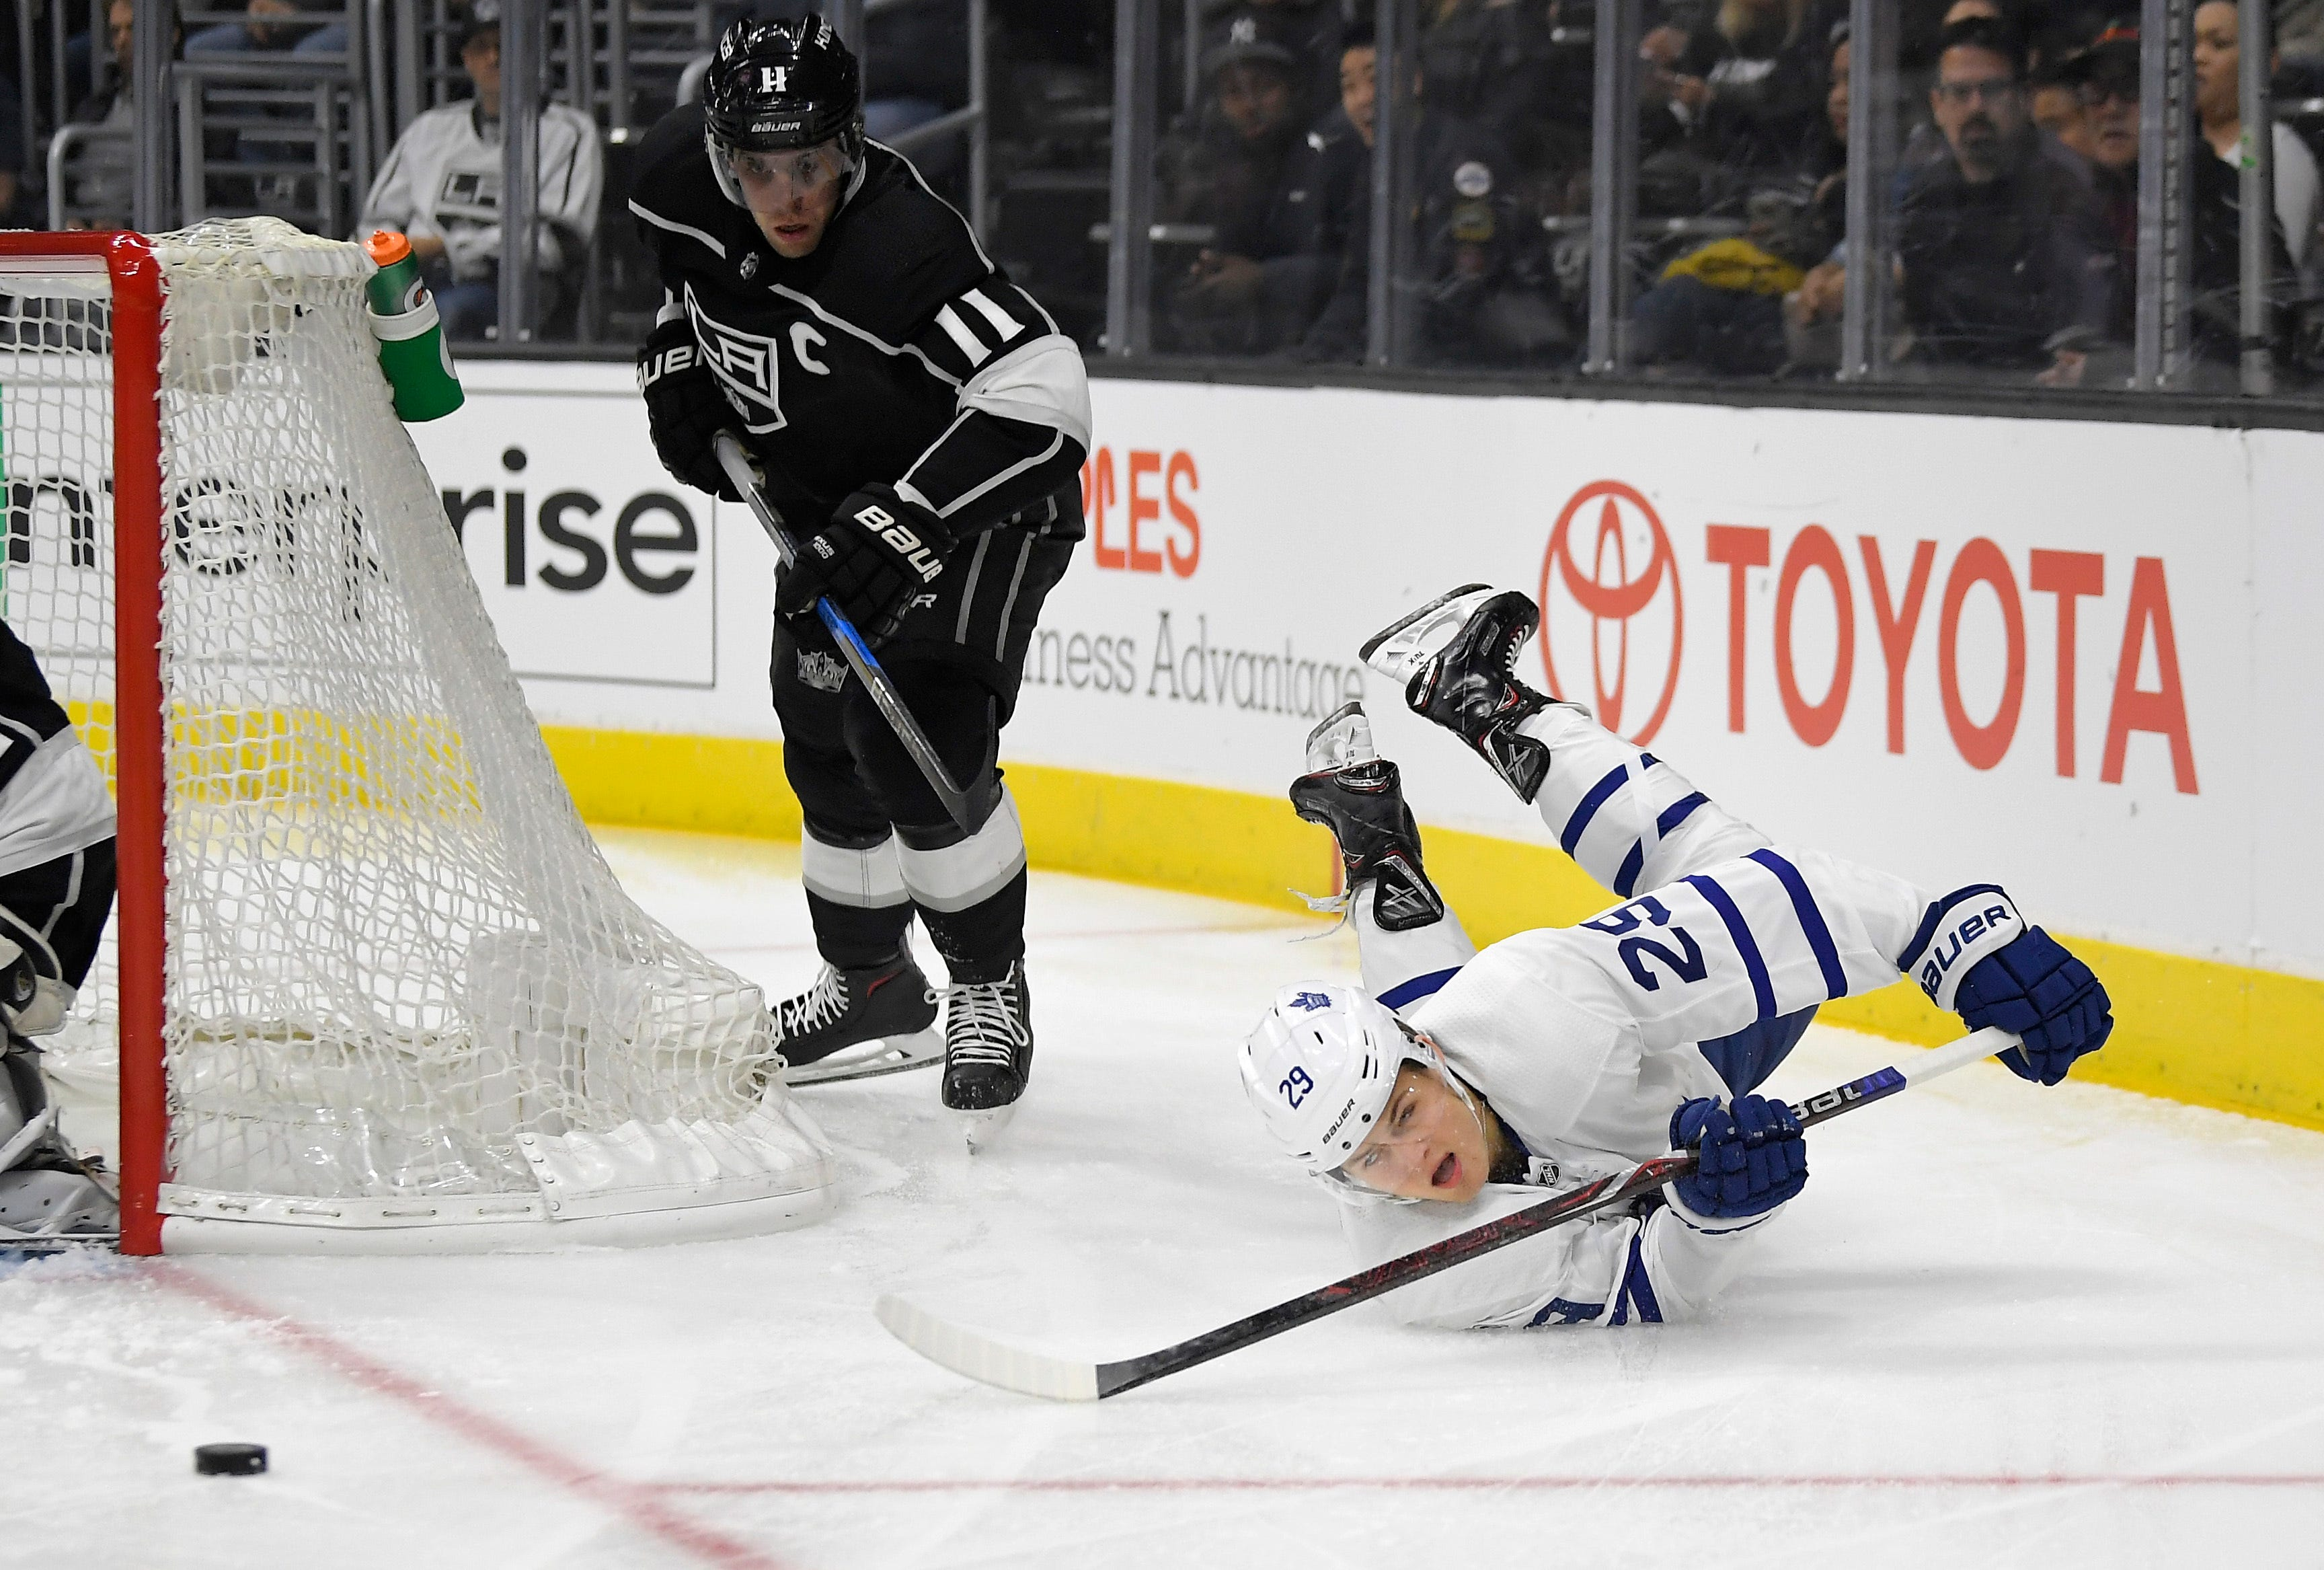 Toffoli leads Kings' early barrage in 5-3 win over Leafs